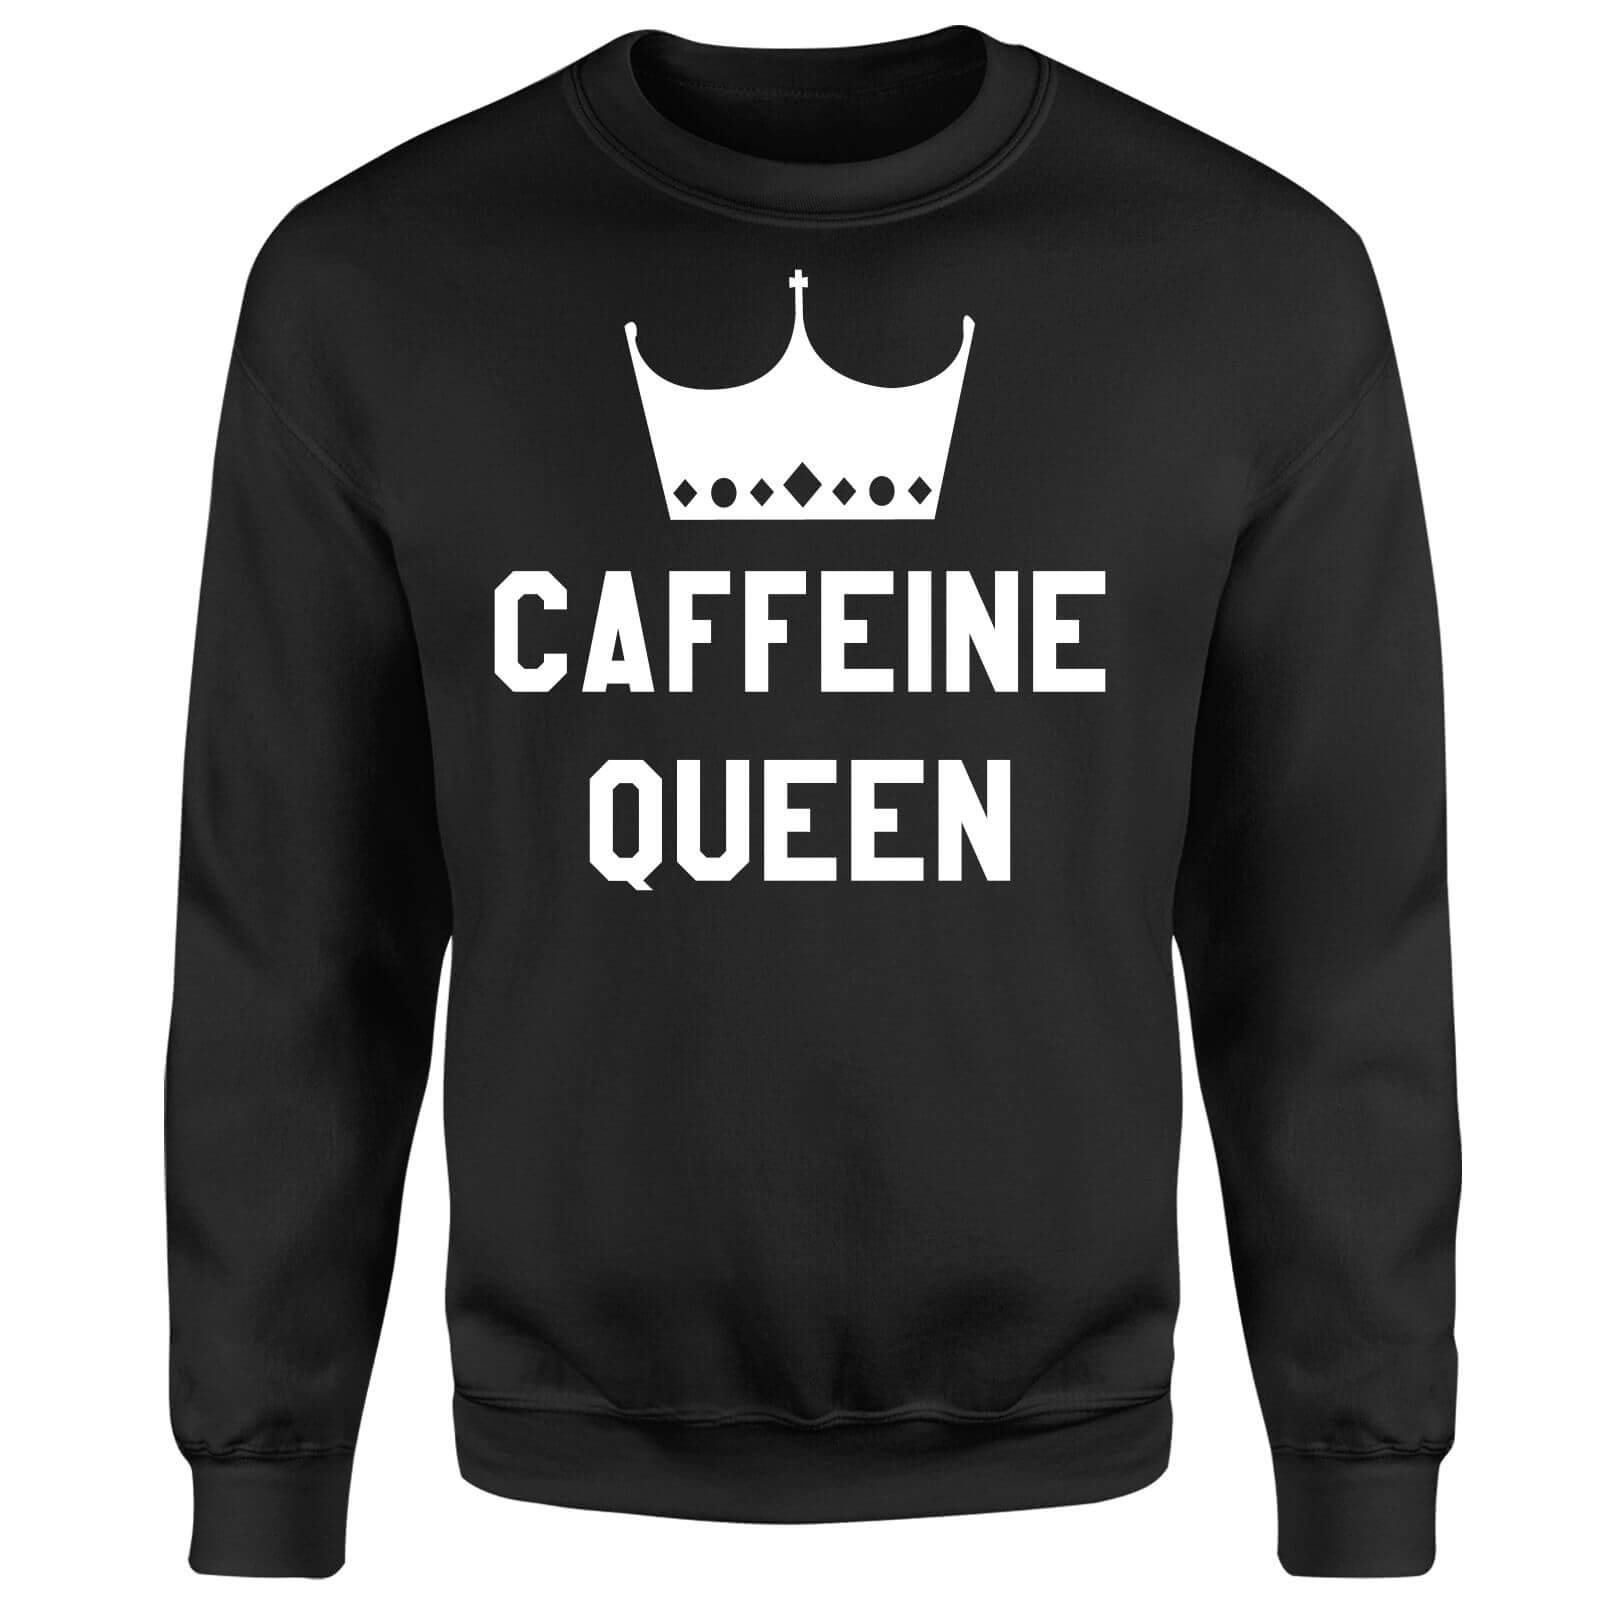 Caffeine Queen Sweatshirt - Black